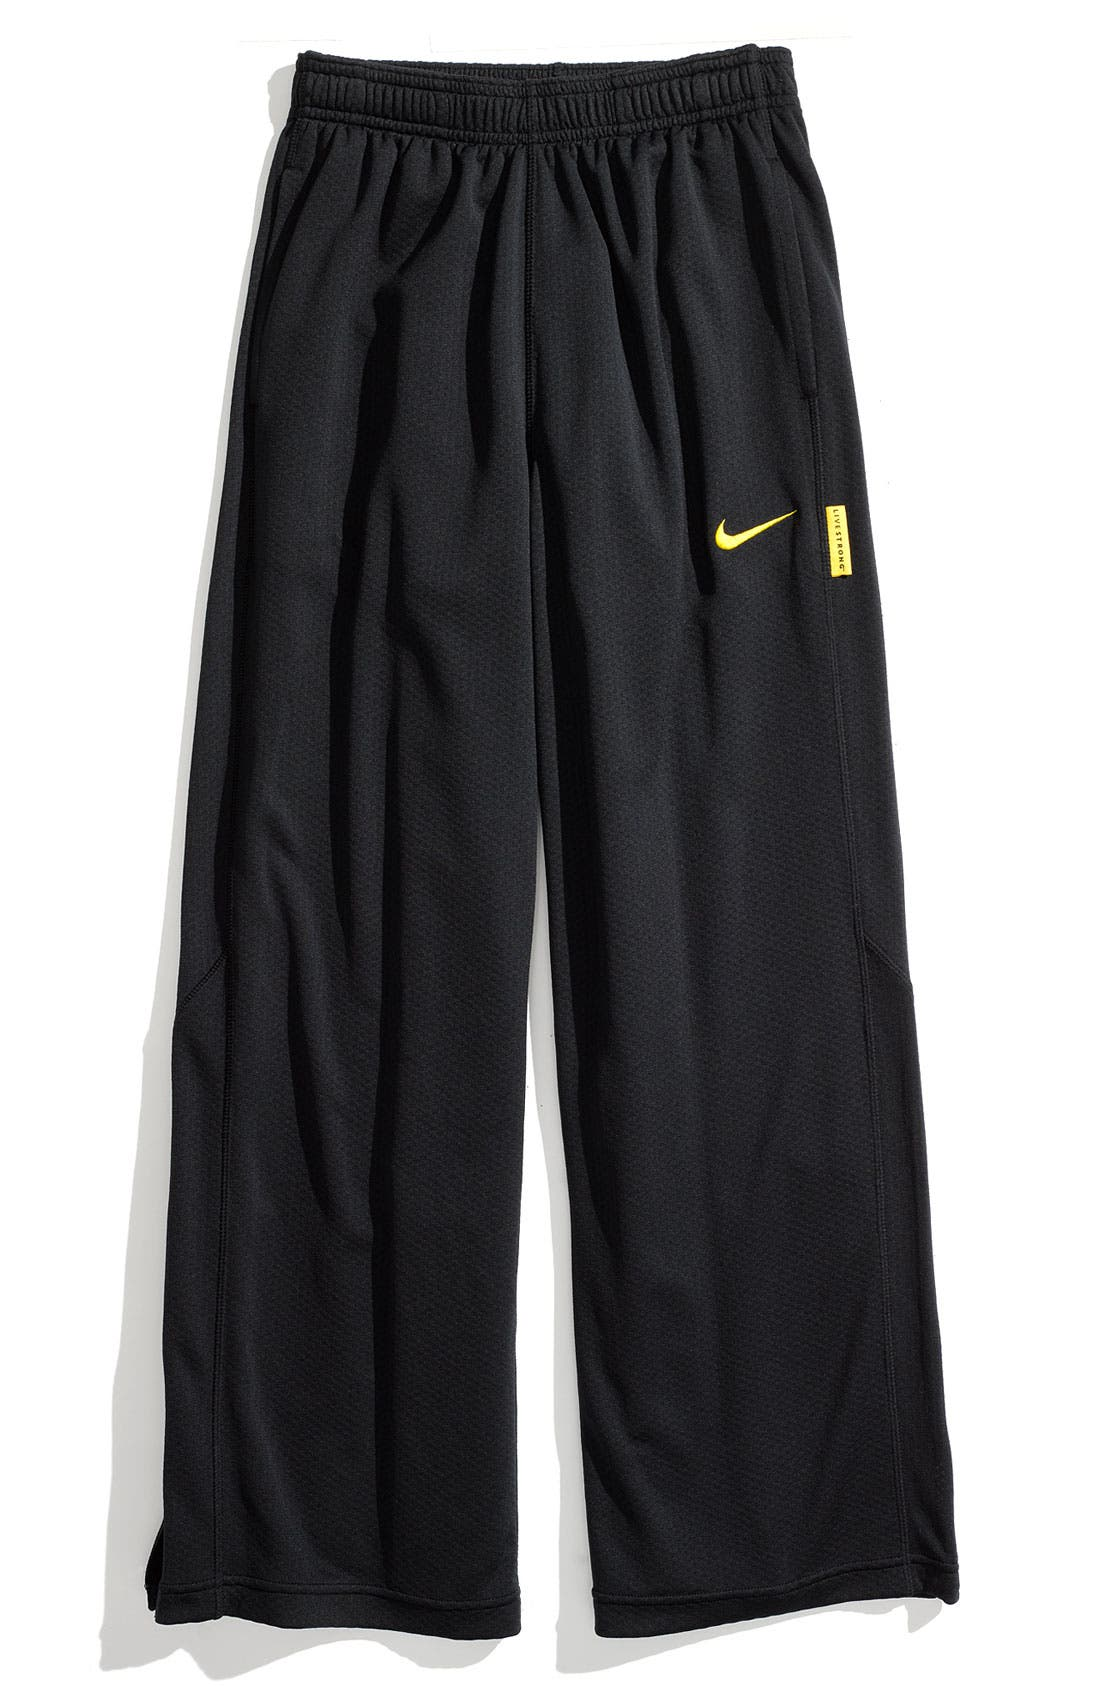 NIKE 'LIVESTRONG' Pants, Main, color, 010